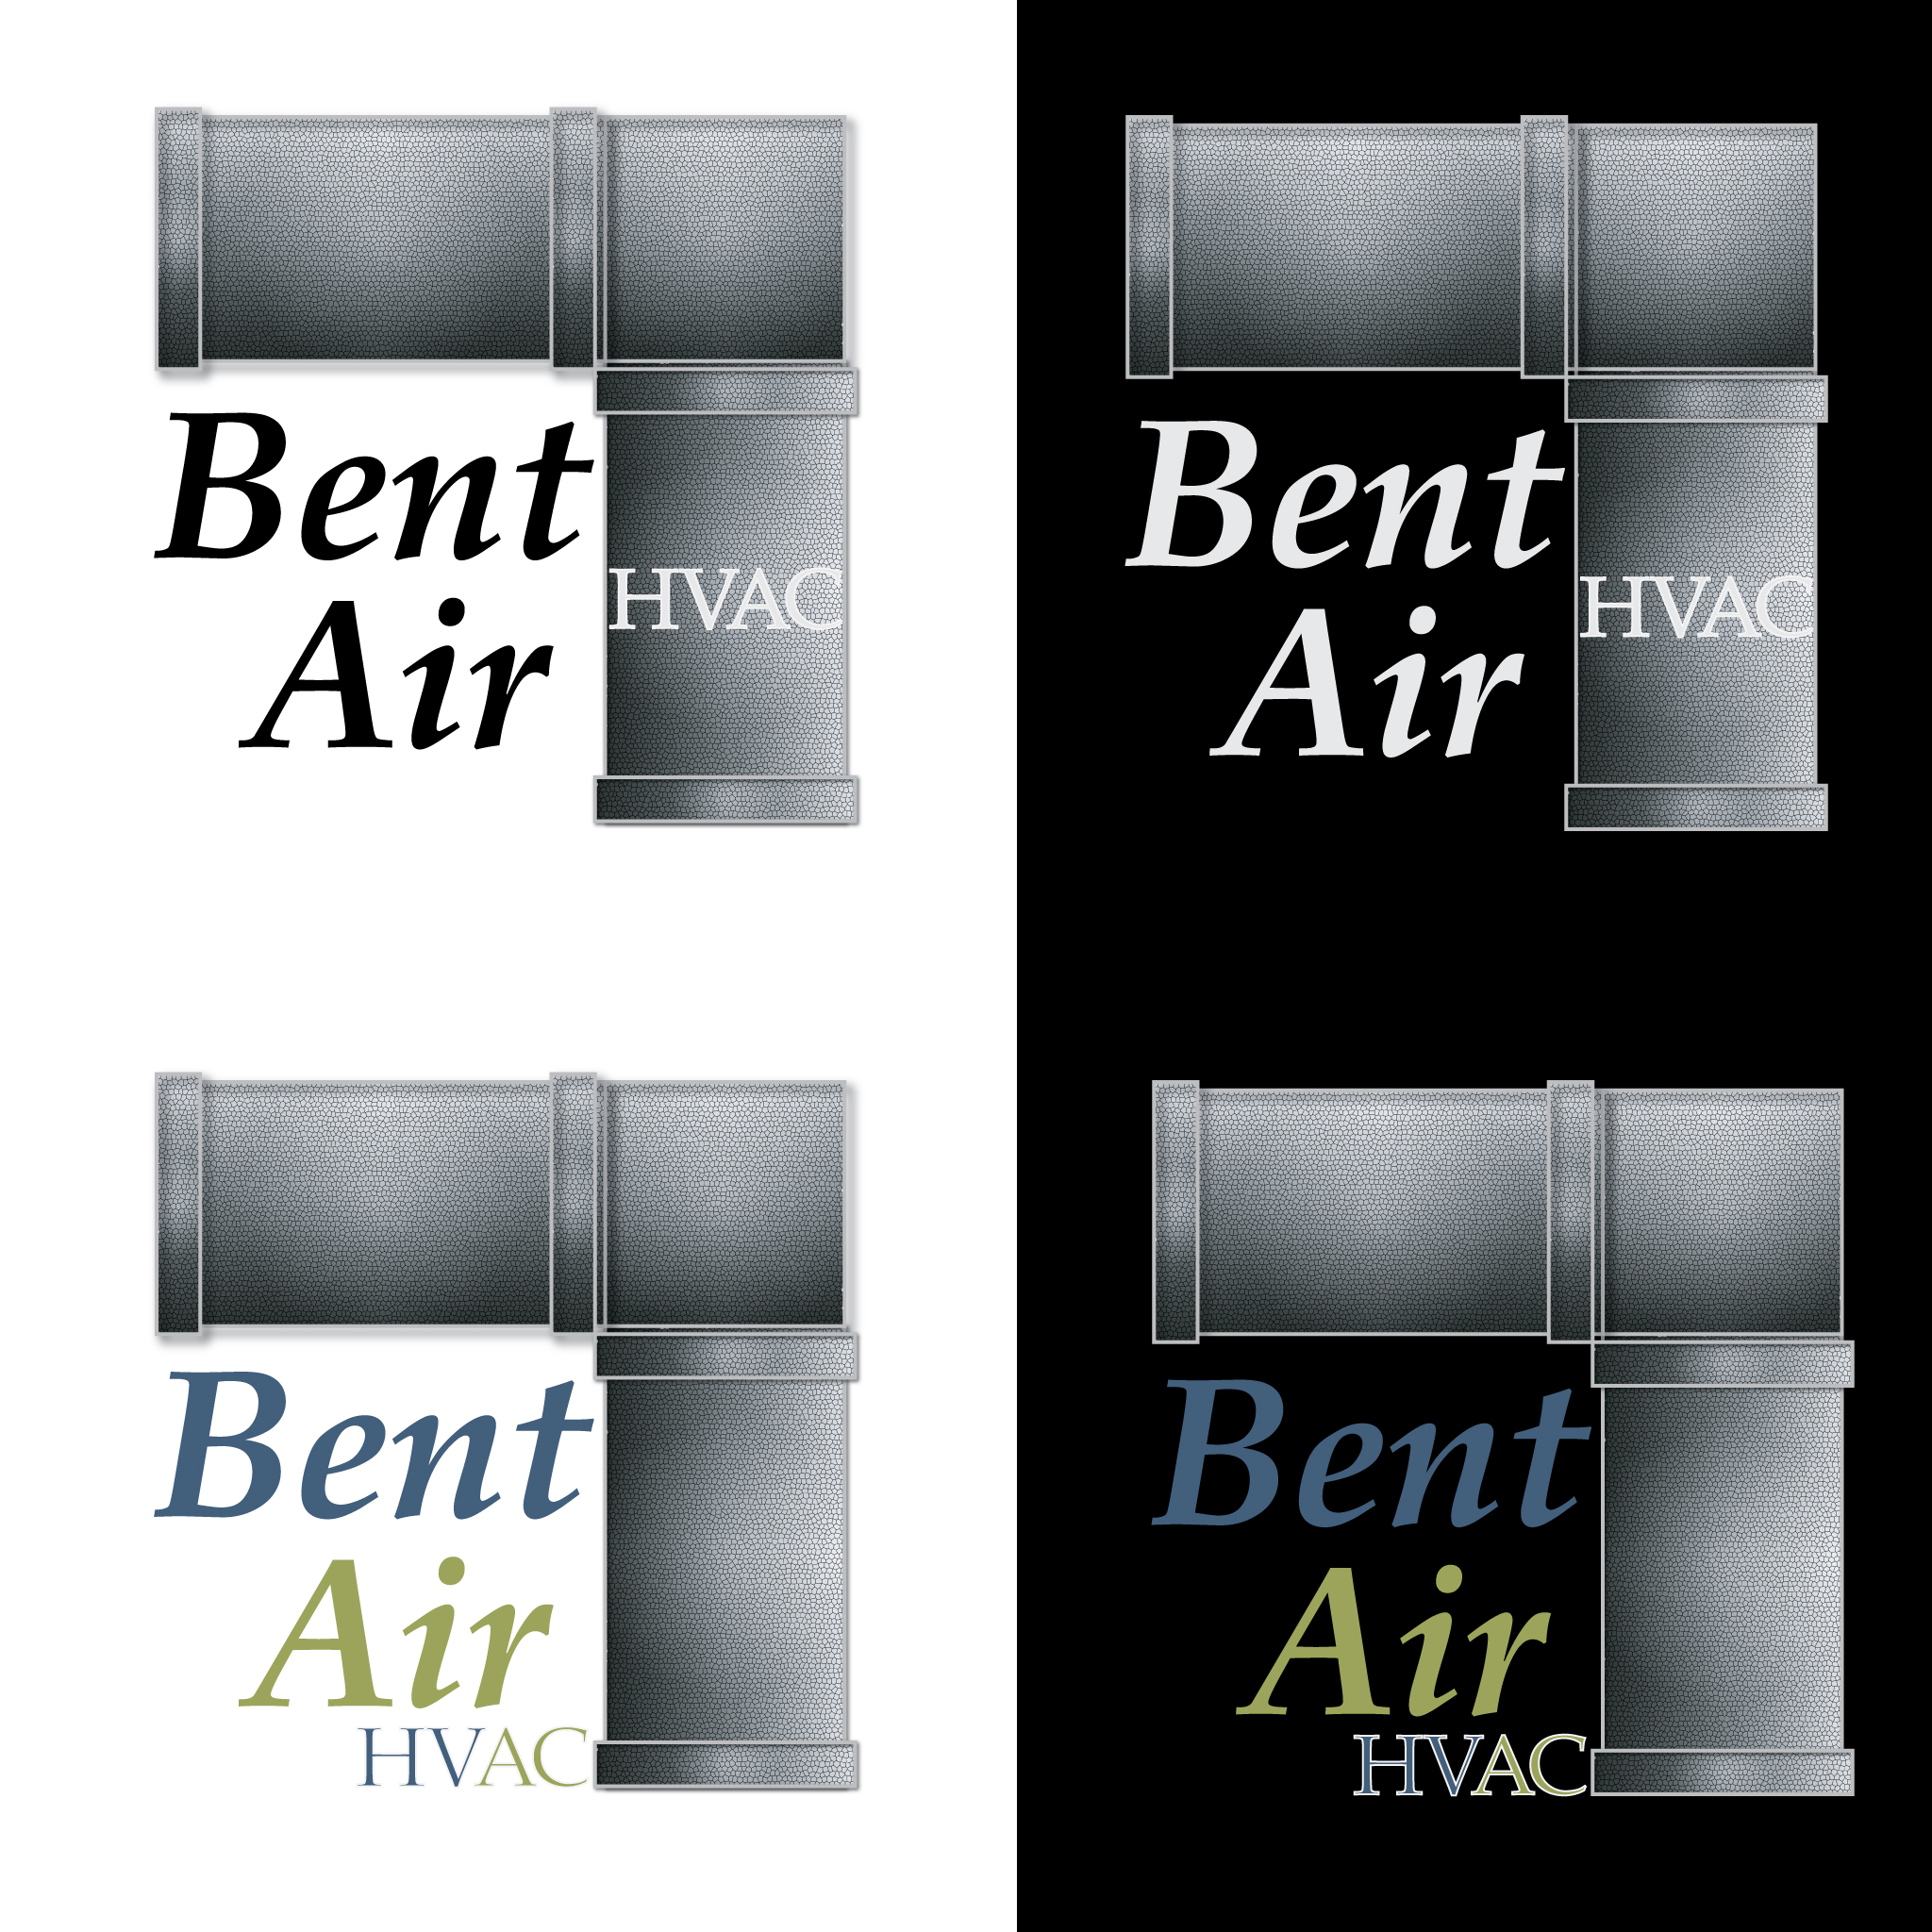 Logo Design by Monte Drebenstedt - Entry No. 57 in the Logo Design Contest BentAir HVAC Logo Design.